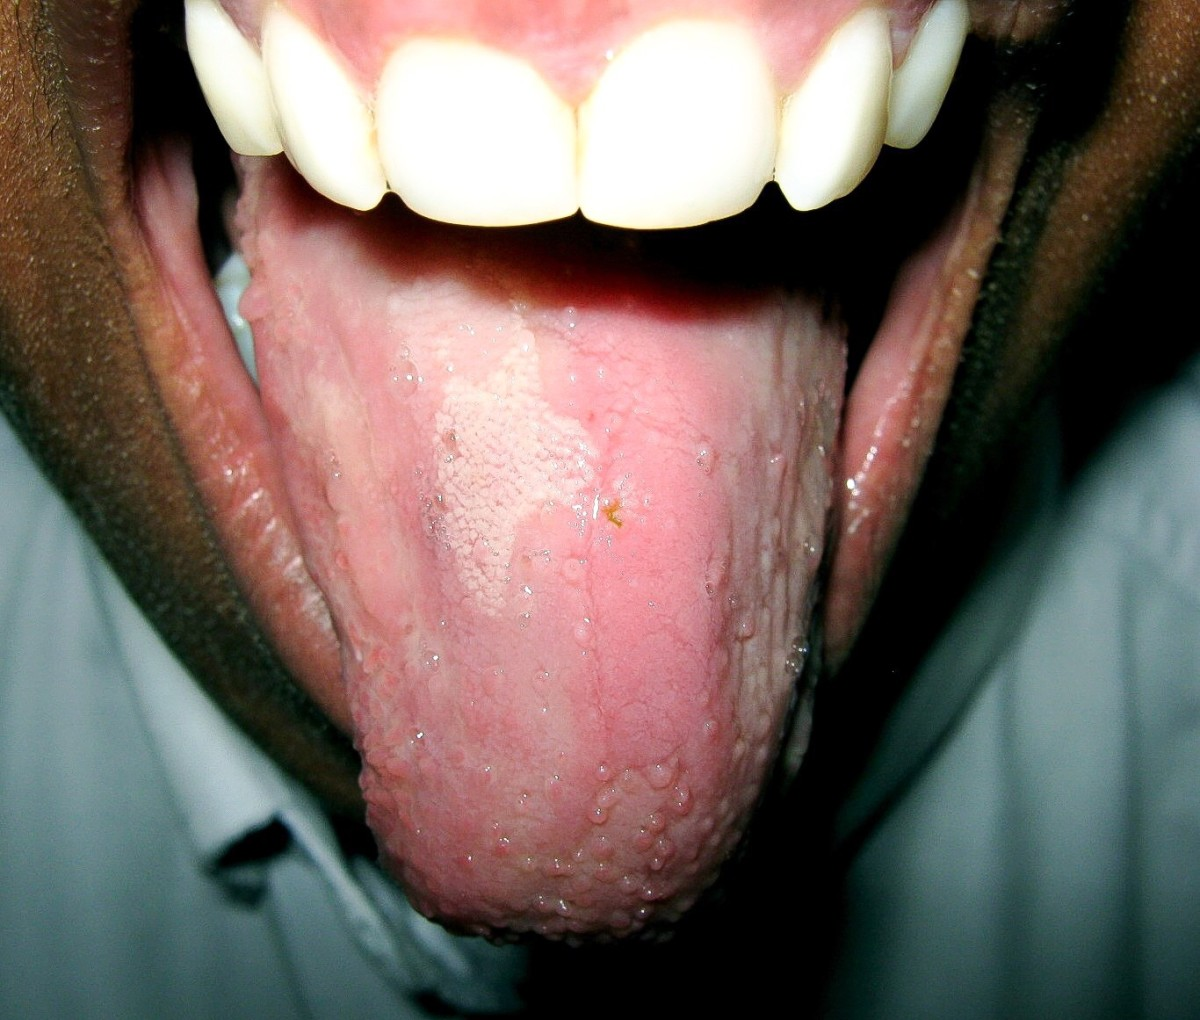 Glossitis involves inflammation and loss of papillae on the tongue.